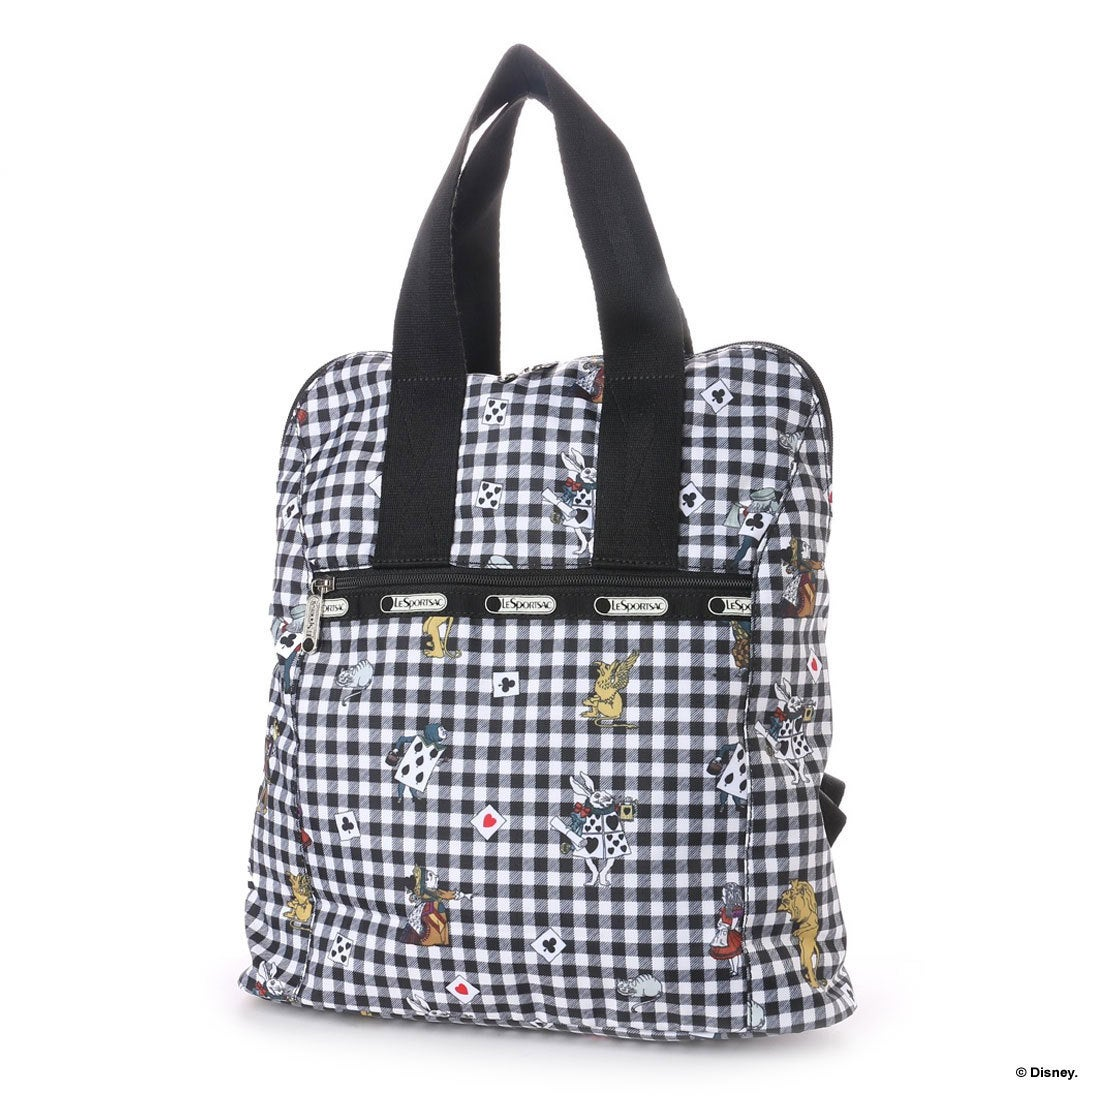 【SALE 30%OFF】レスポートサック LeSportsac EVERYDAY BACKPACK (CARD GINGHAM) レディース